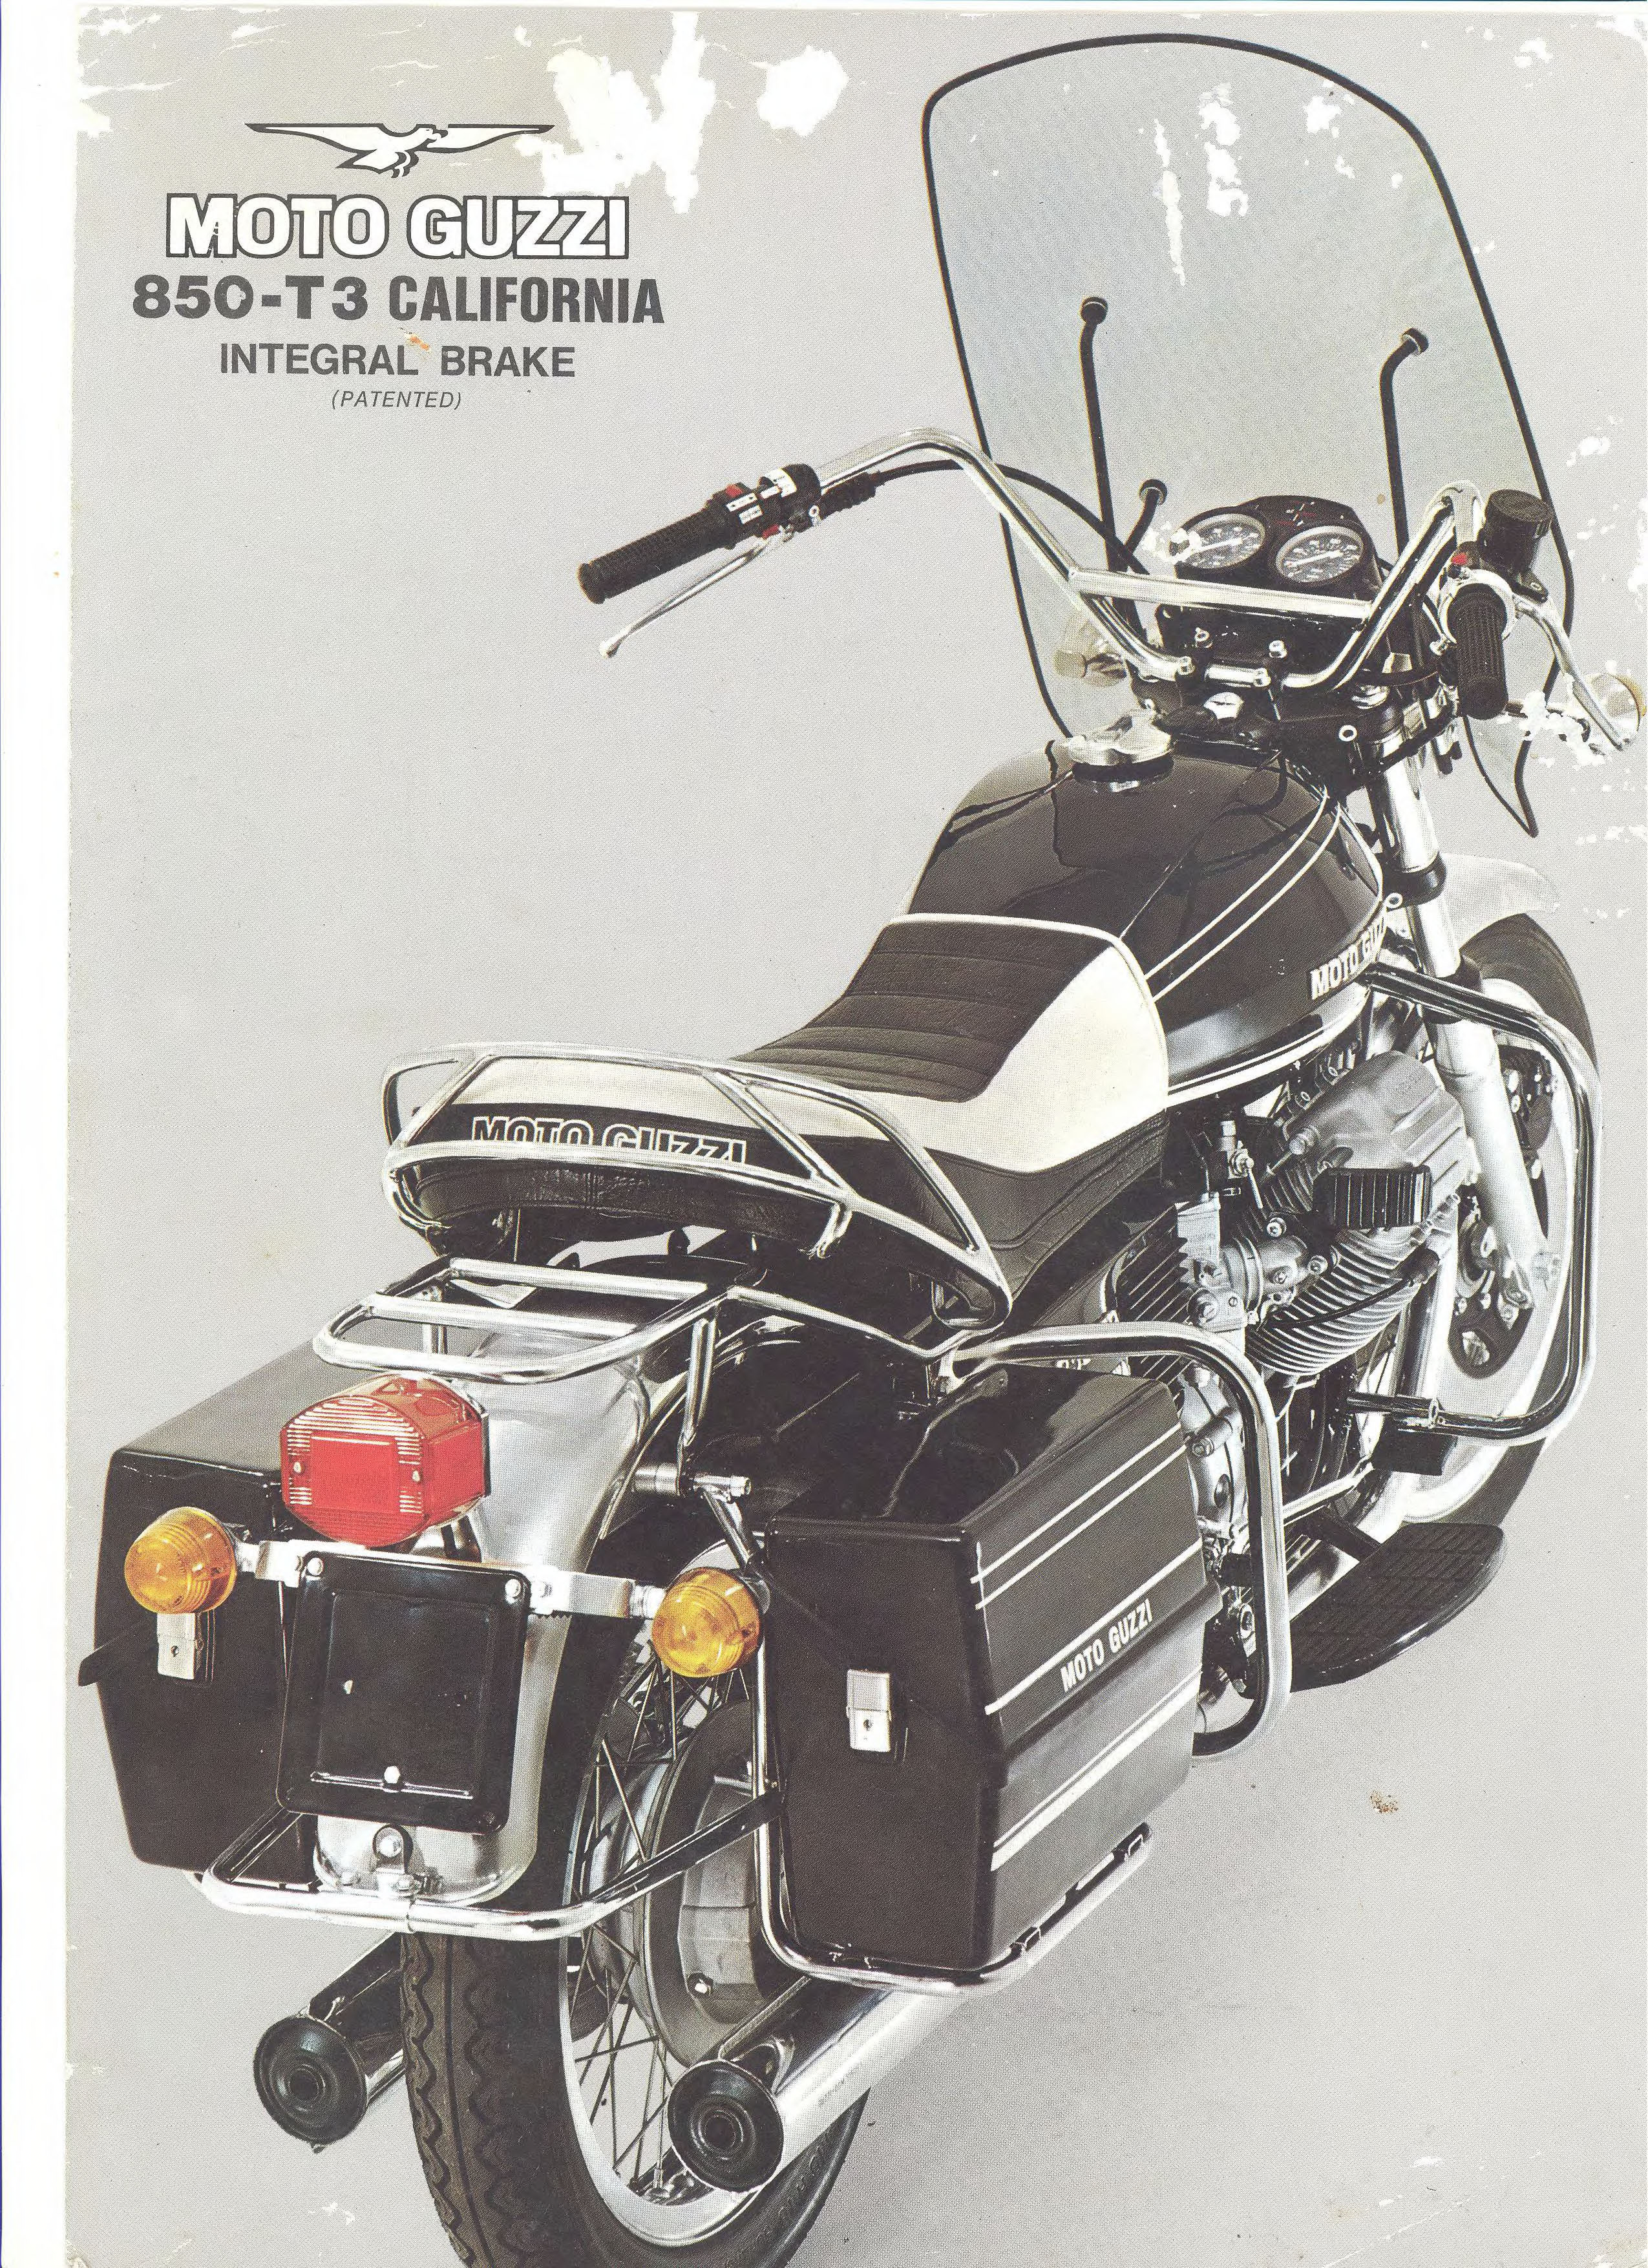 Moto Guzzi factory brochure: 850 T3 California